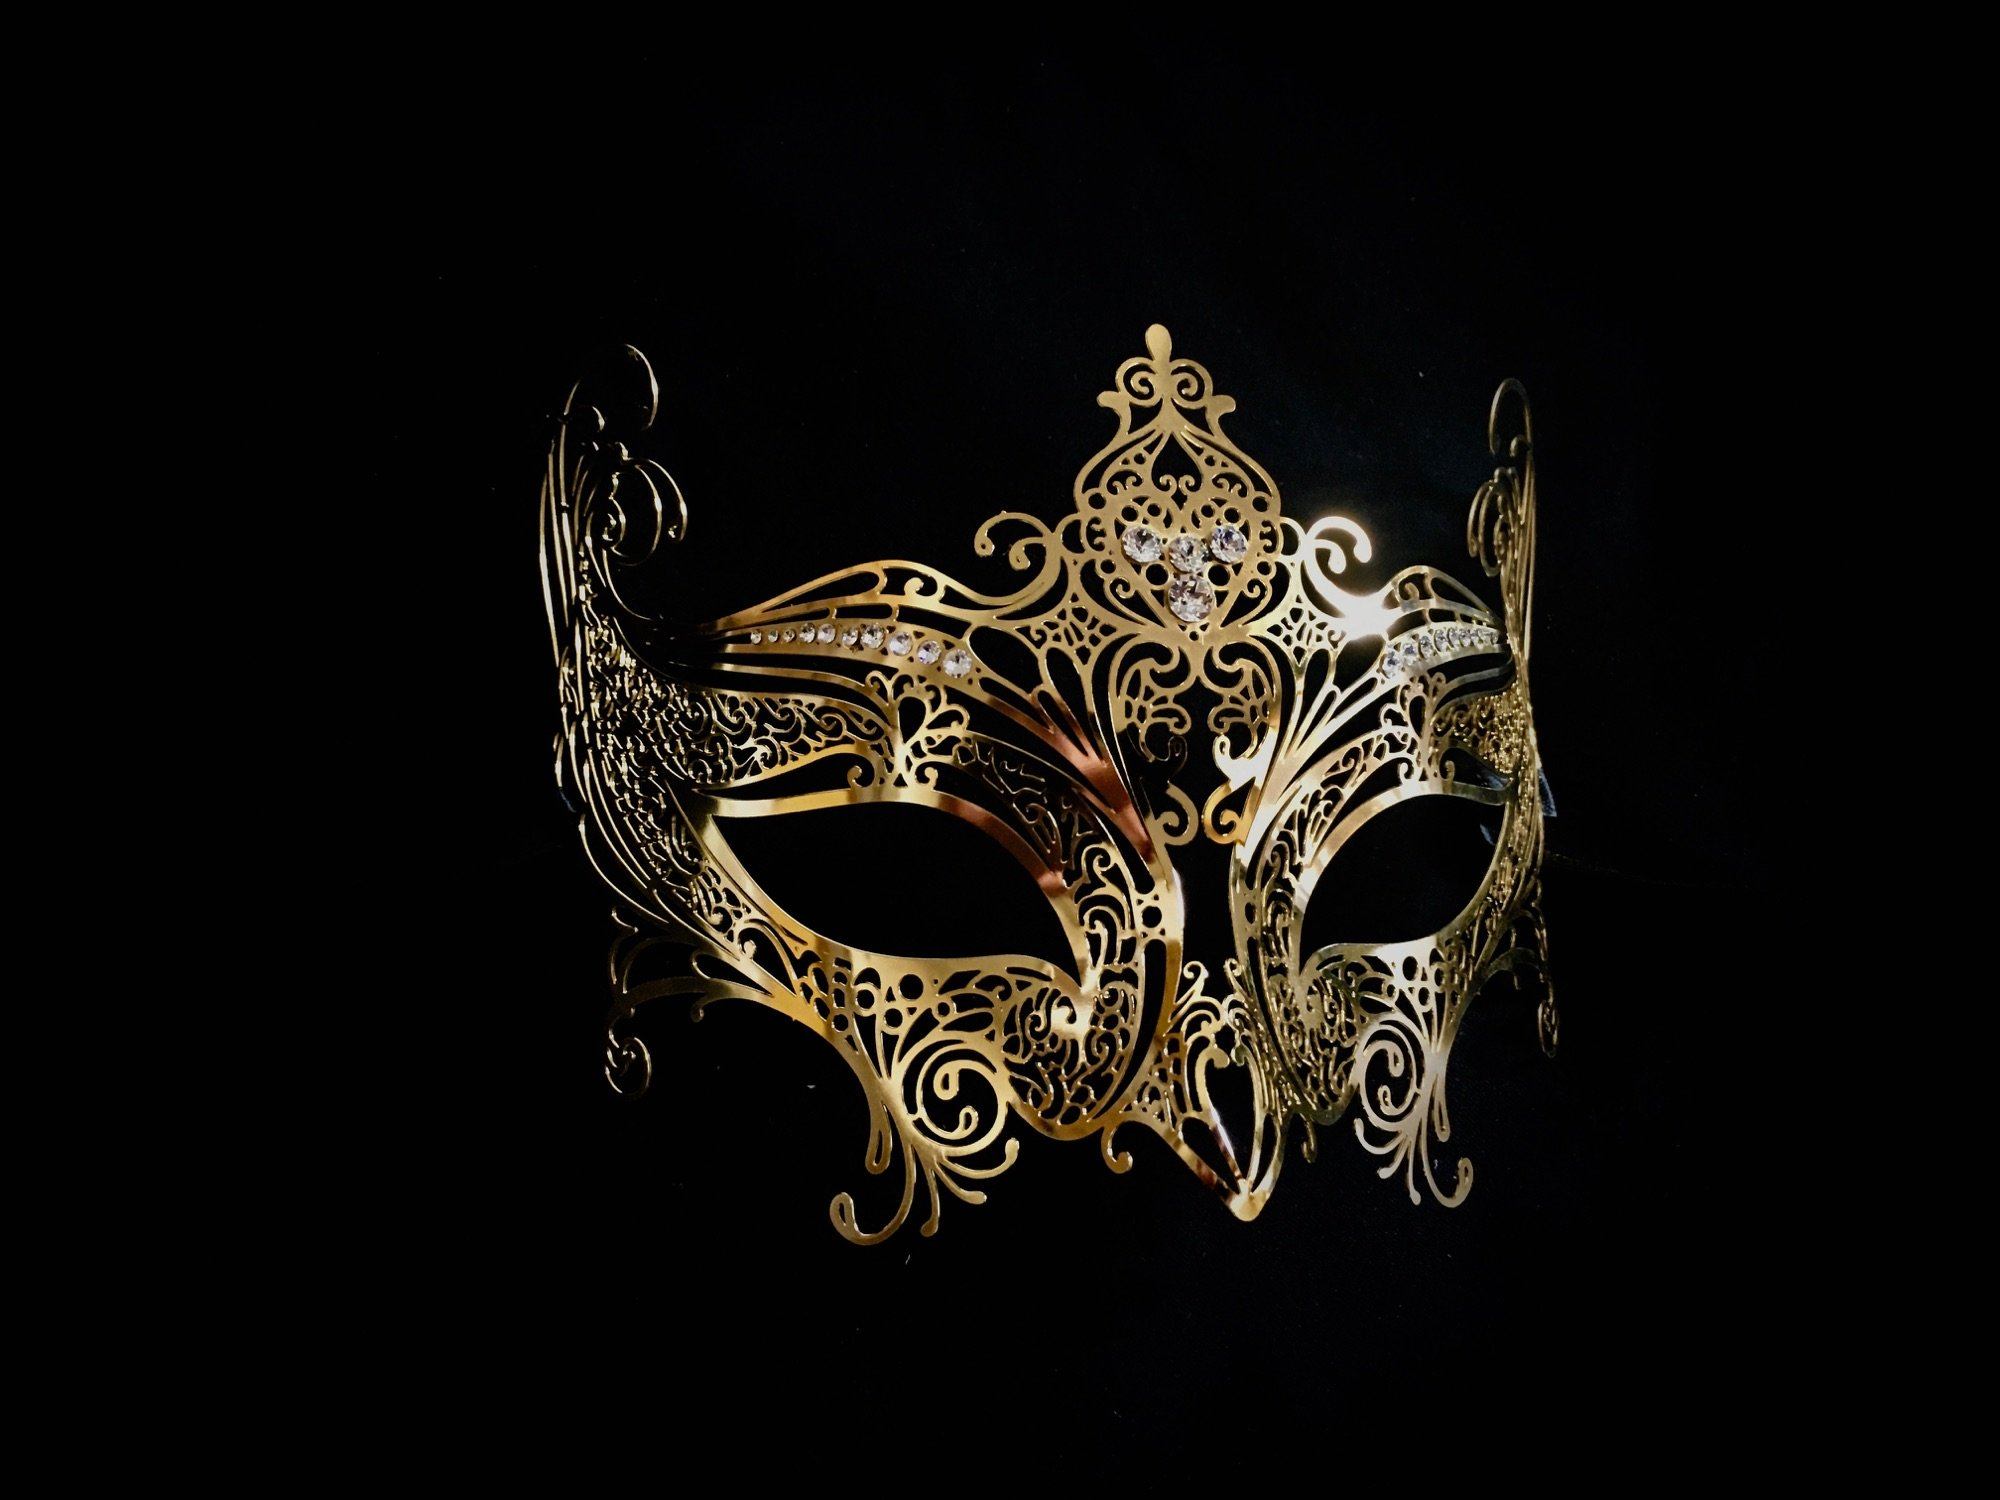 Show off your party style at all times with this must-have Elegance Venetian Mask from Simply Masquerade